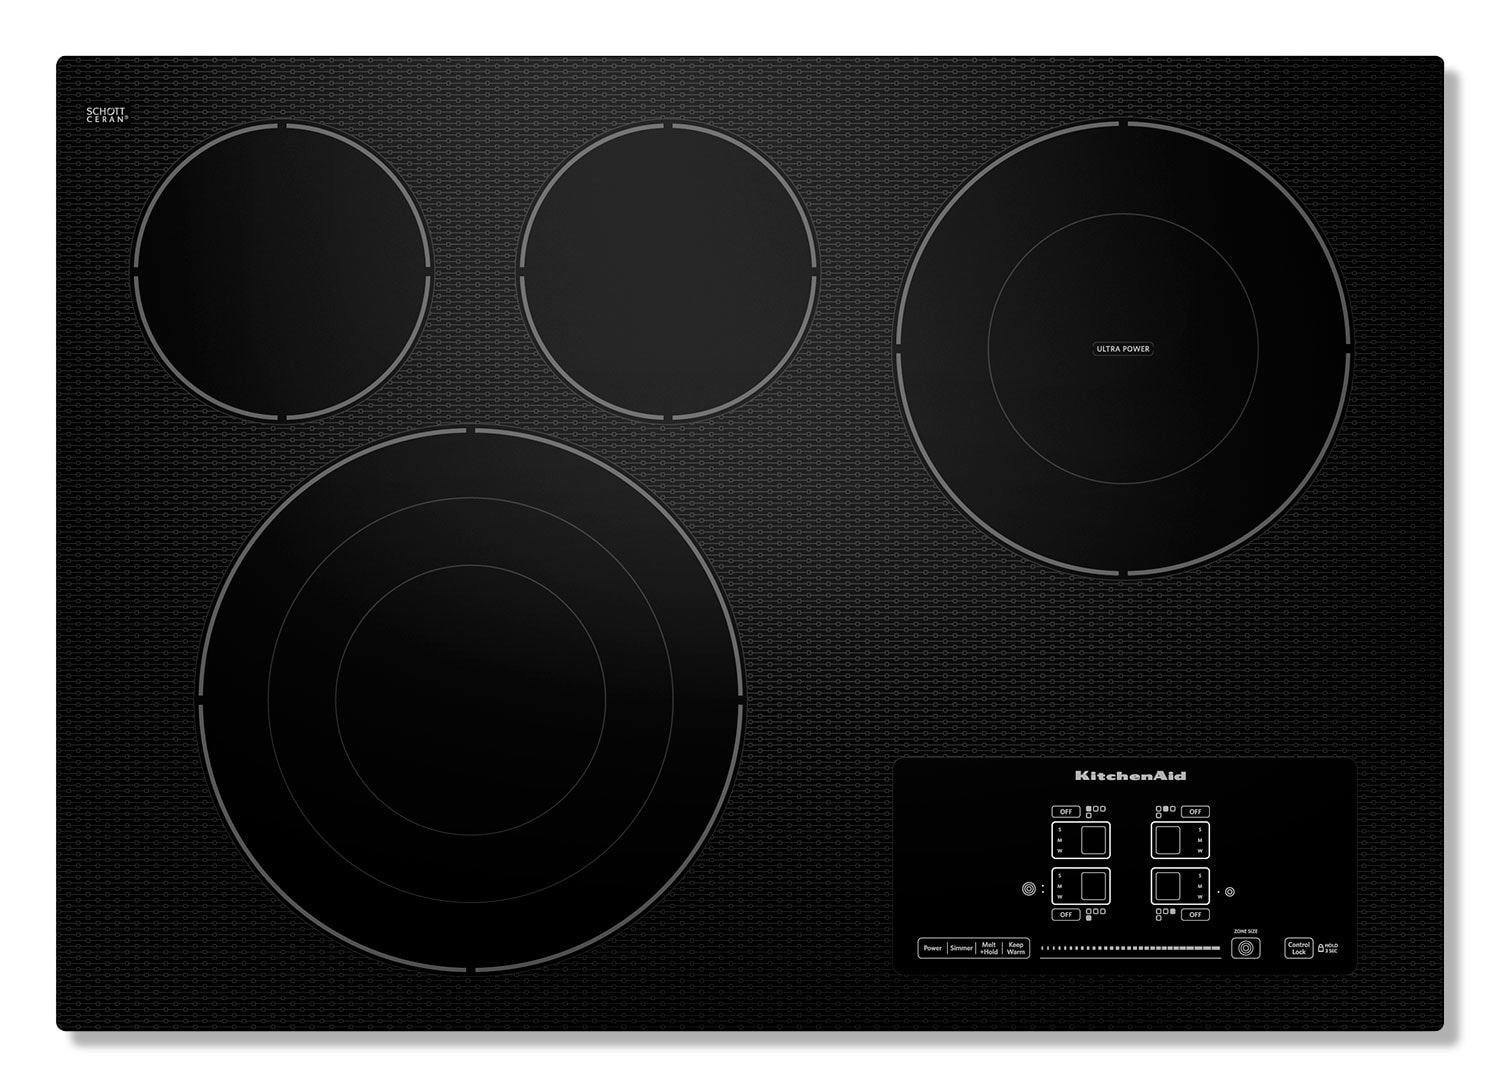 Cooking Products - KitchenAid Electric Cooktop KECC607BBL